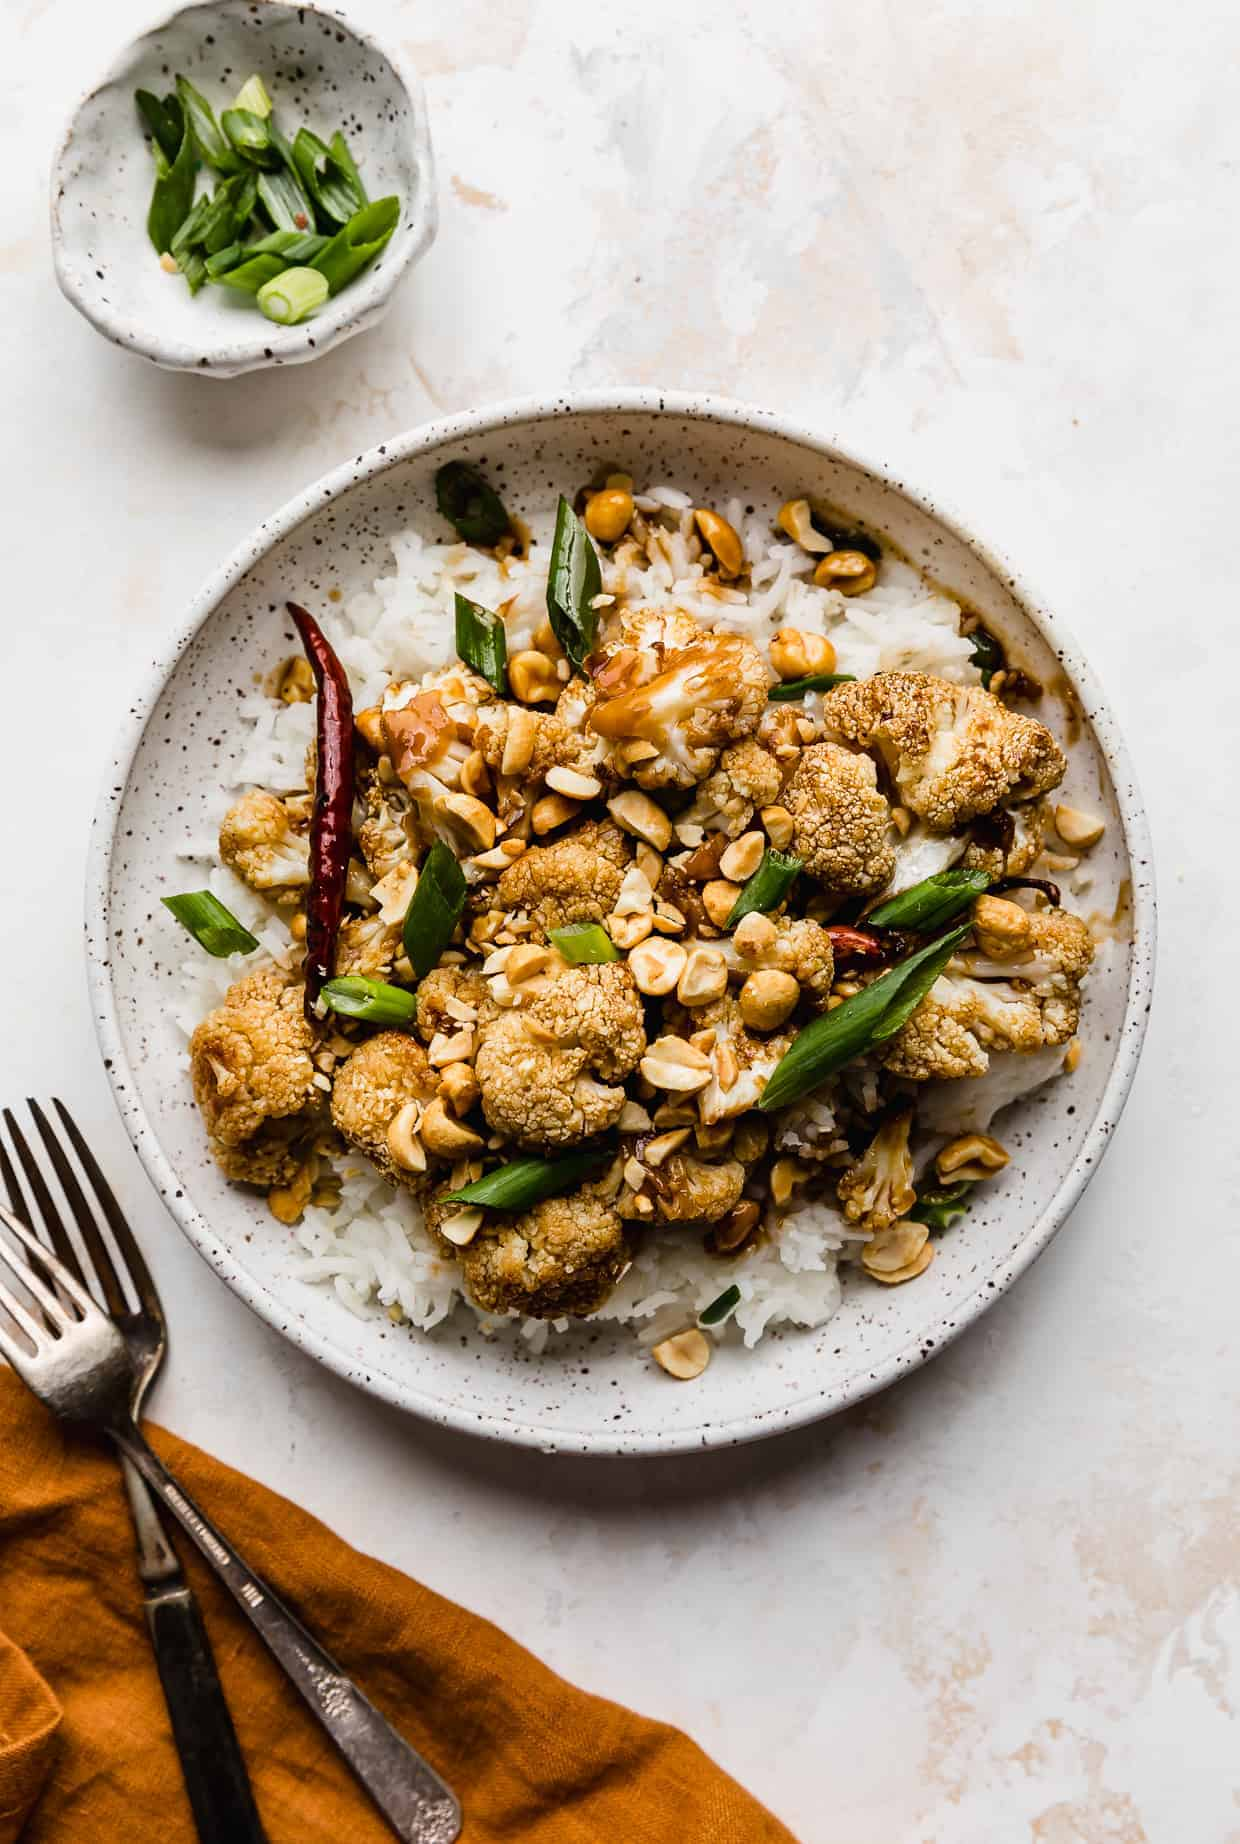 A white plate with green onion and peanut garnished Kung Pao Cauliflower, against a cream colored background.